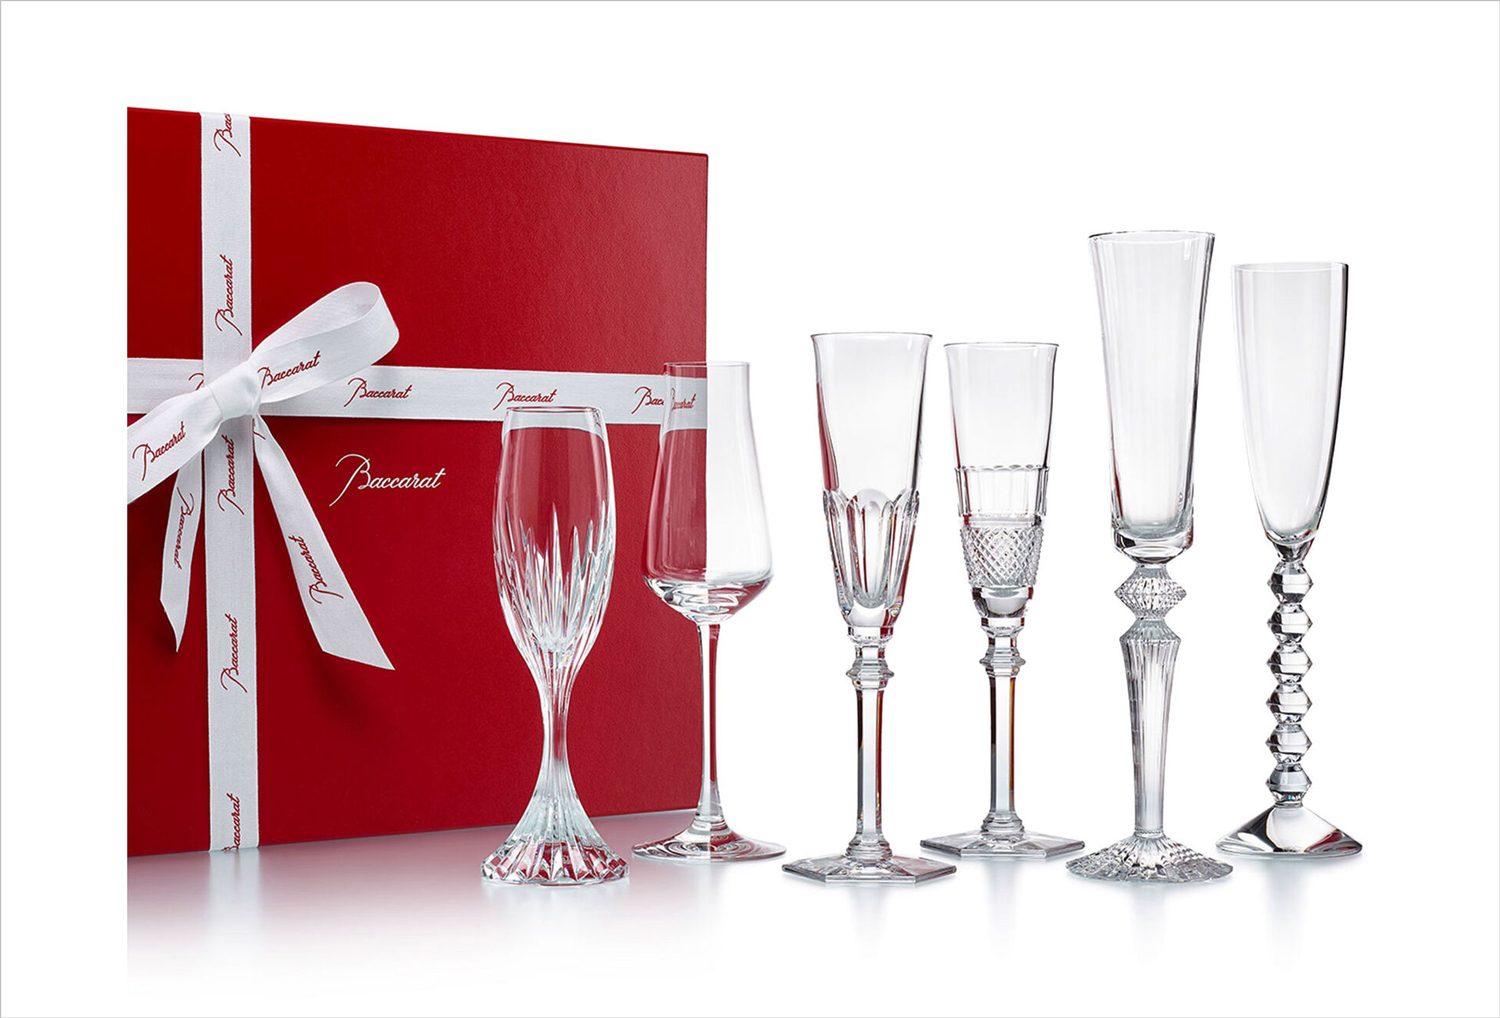 baccarat bubbles in a box champagne flute glasses set of six gearys holiday registry ideas